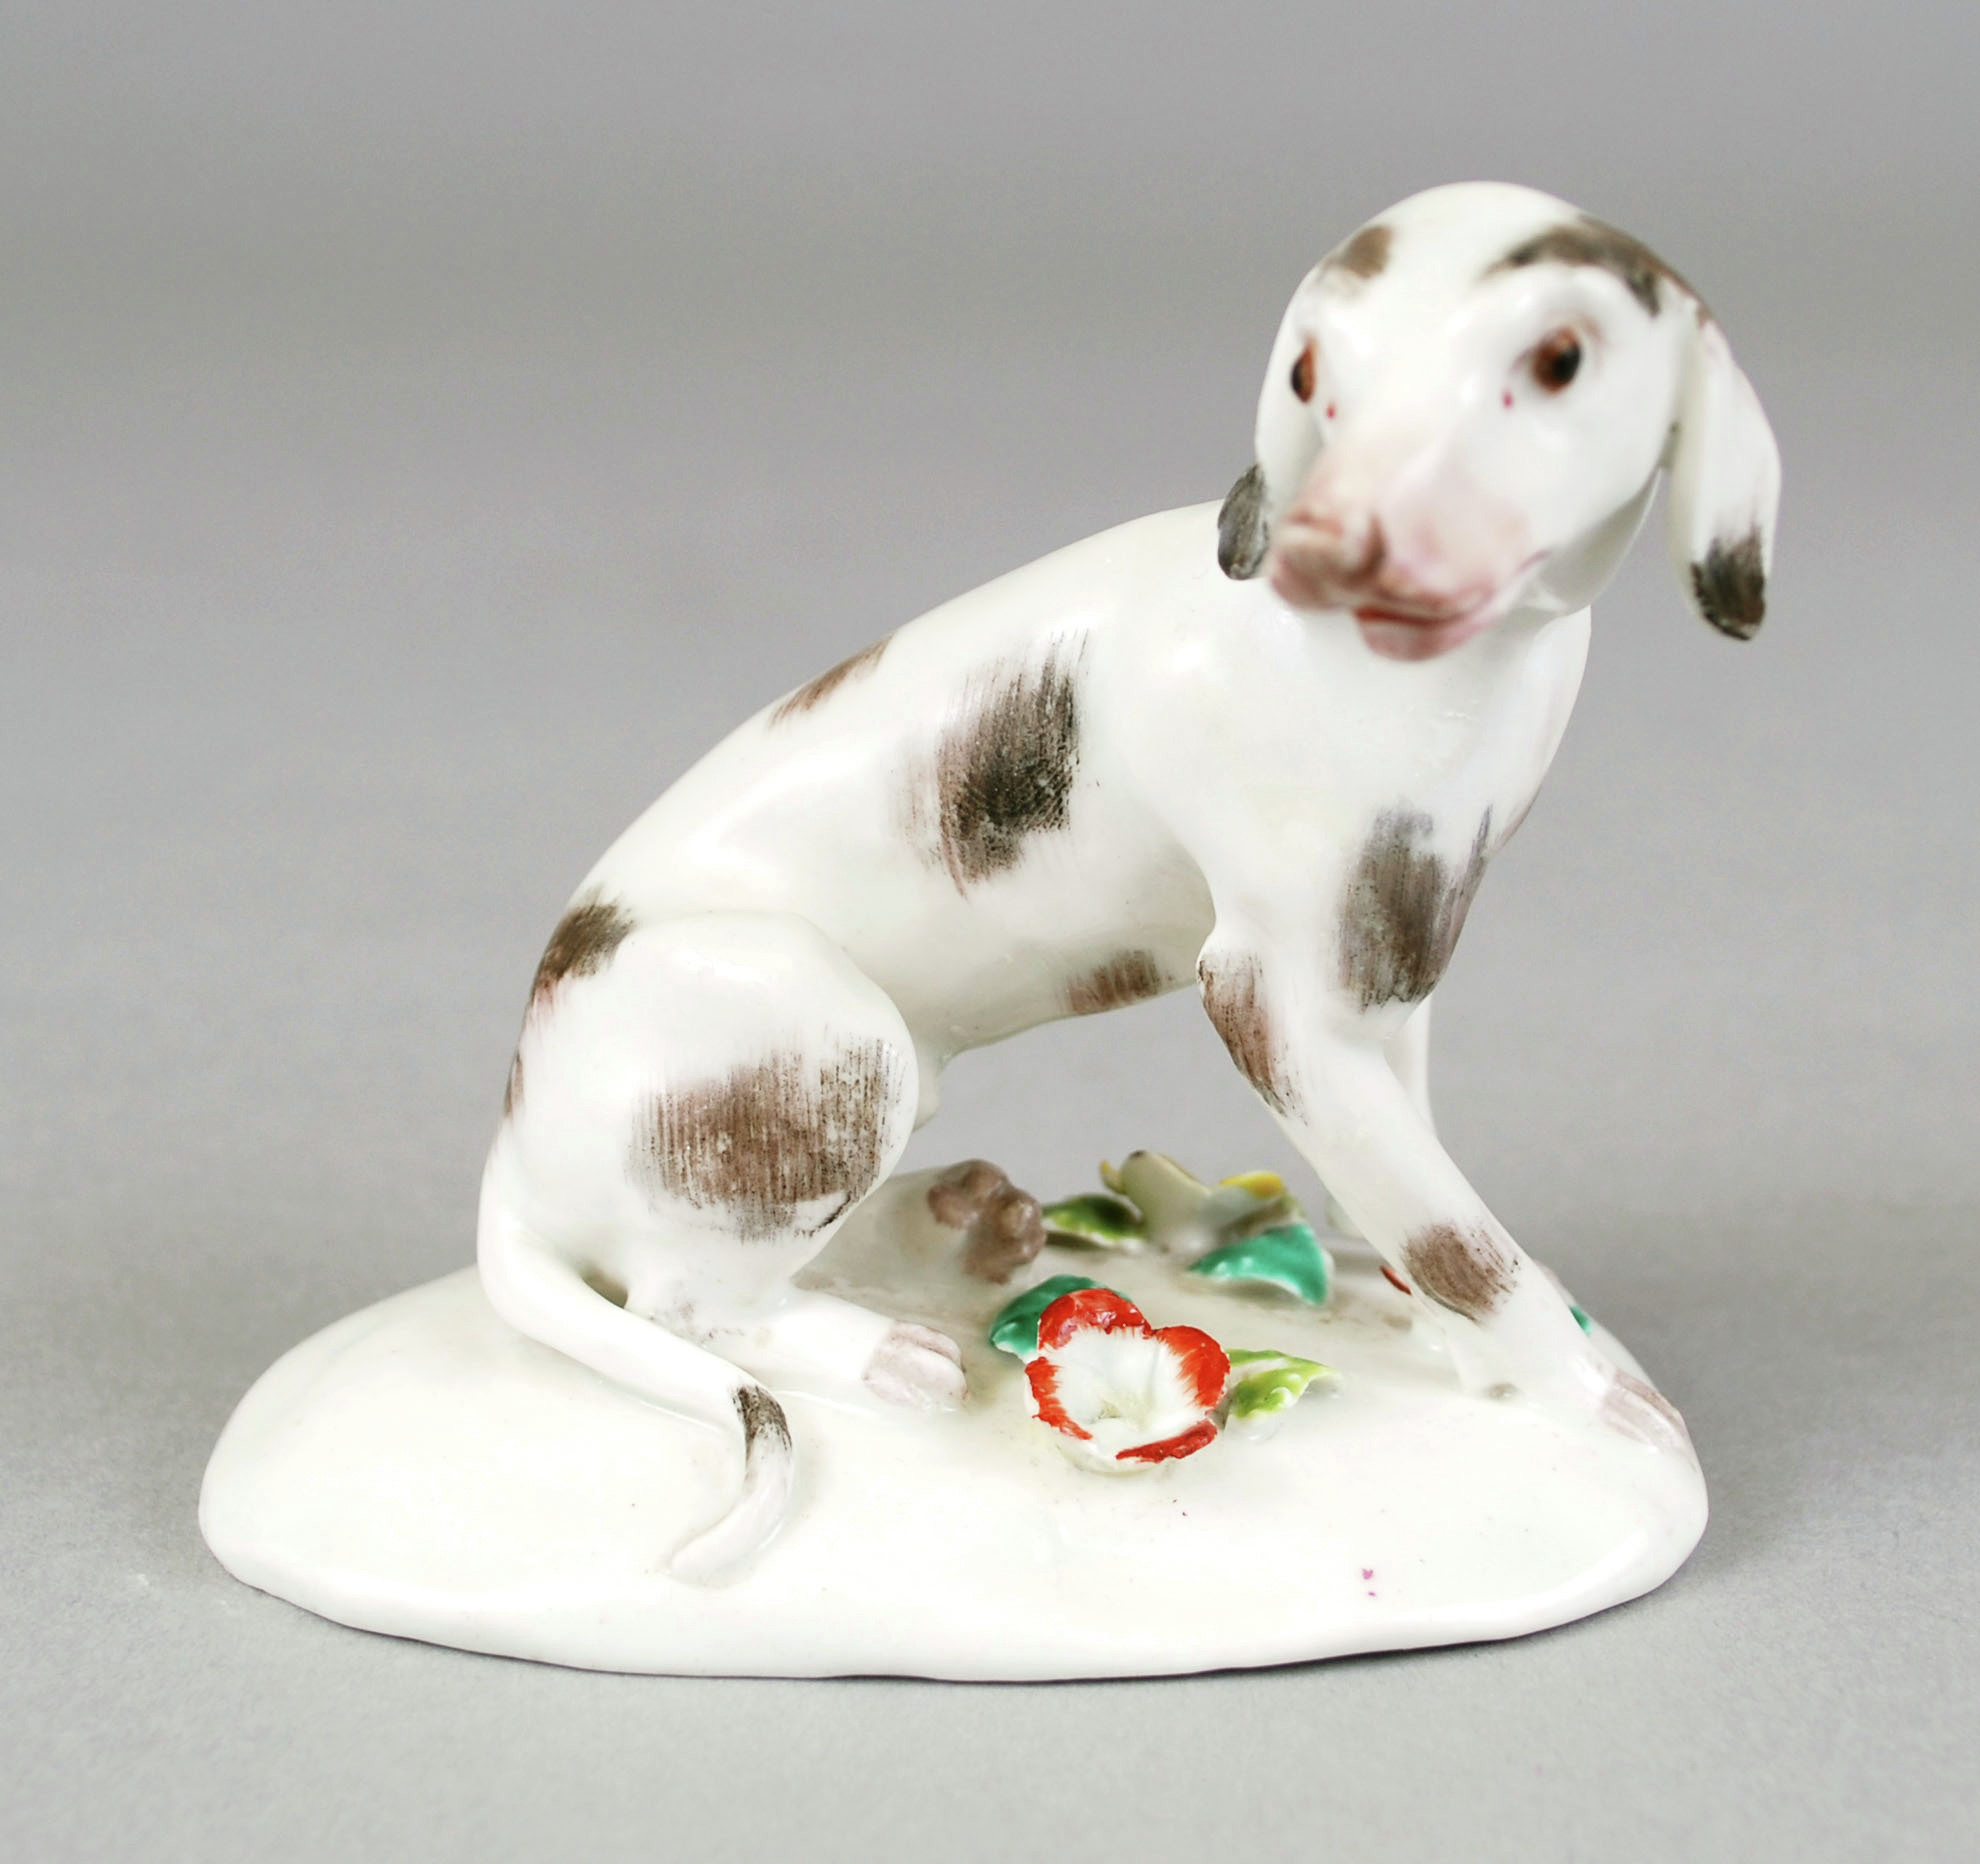 A small Bow Dismal Hound seated on its haunches with head turned and tail curved to the left. The dog's white coat is colored in patches of brown. The dog figure is seated on an oval shaped base decorated with three flowers of red, yellow and rust colors with green leaves.